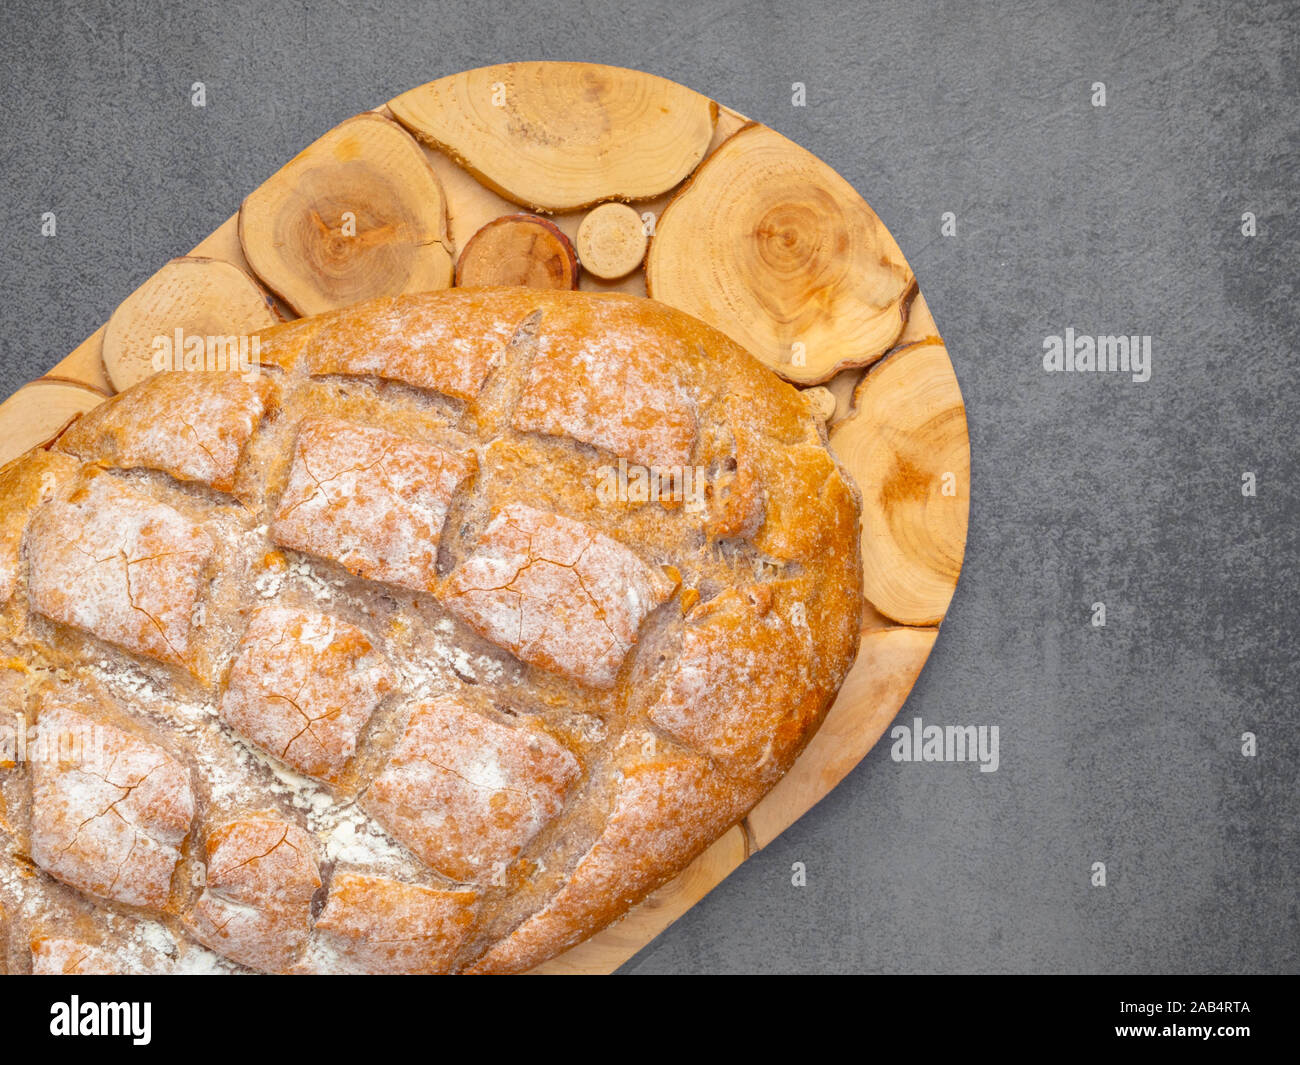 Bread on wood. Brown grain bread on wooden board. Bakery and grocery food concept Stock Photo